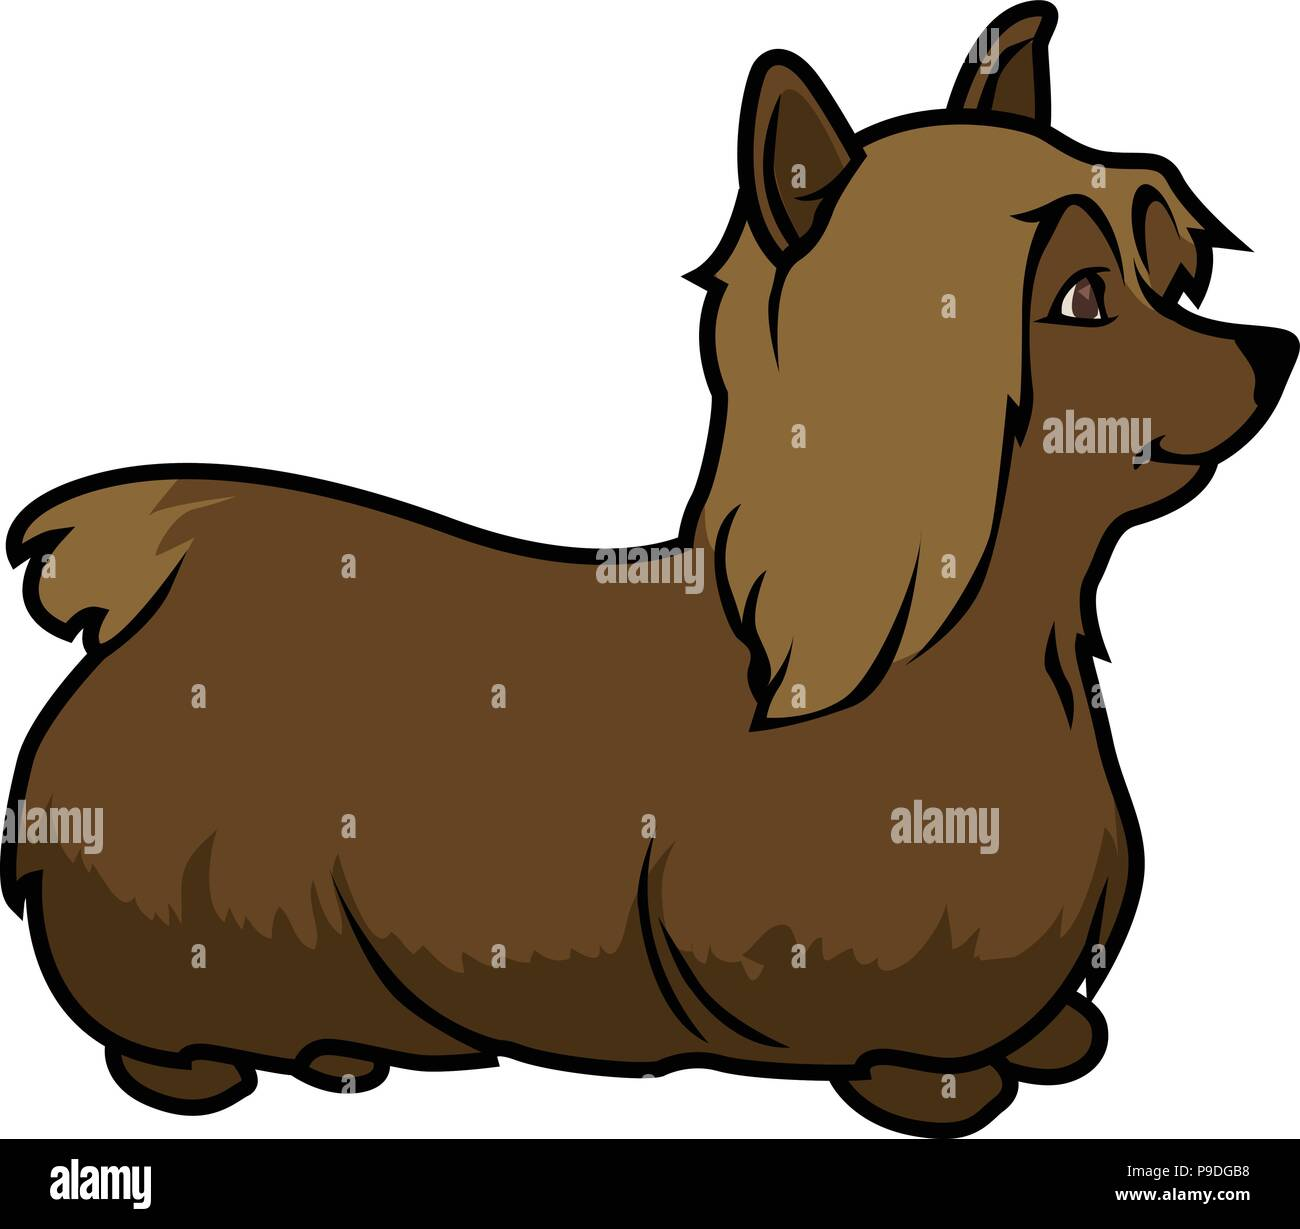 Pomeranian Or Pom. Cute Lovely Purebred Toy Or Lap Dog Of Spitz.. Royalty  Free Cliparts, Vectors, And Stock Illustration. Image 124954603.